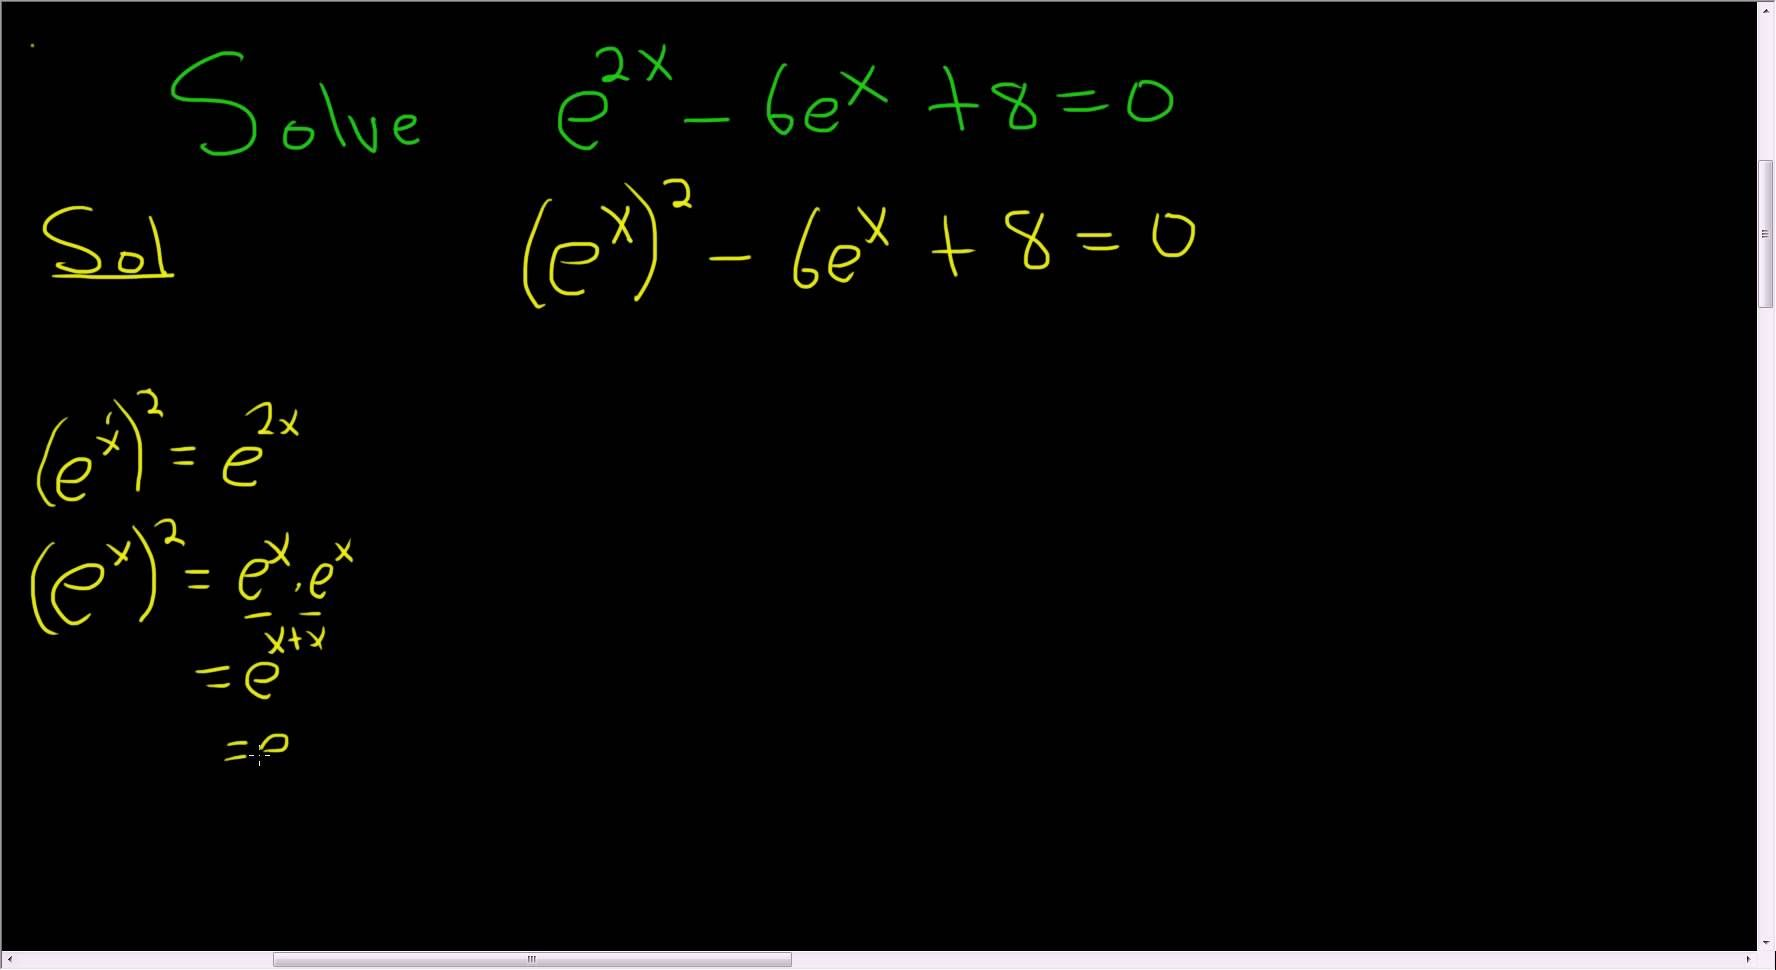 Solving The Exponential Equation E 2x